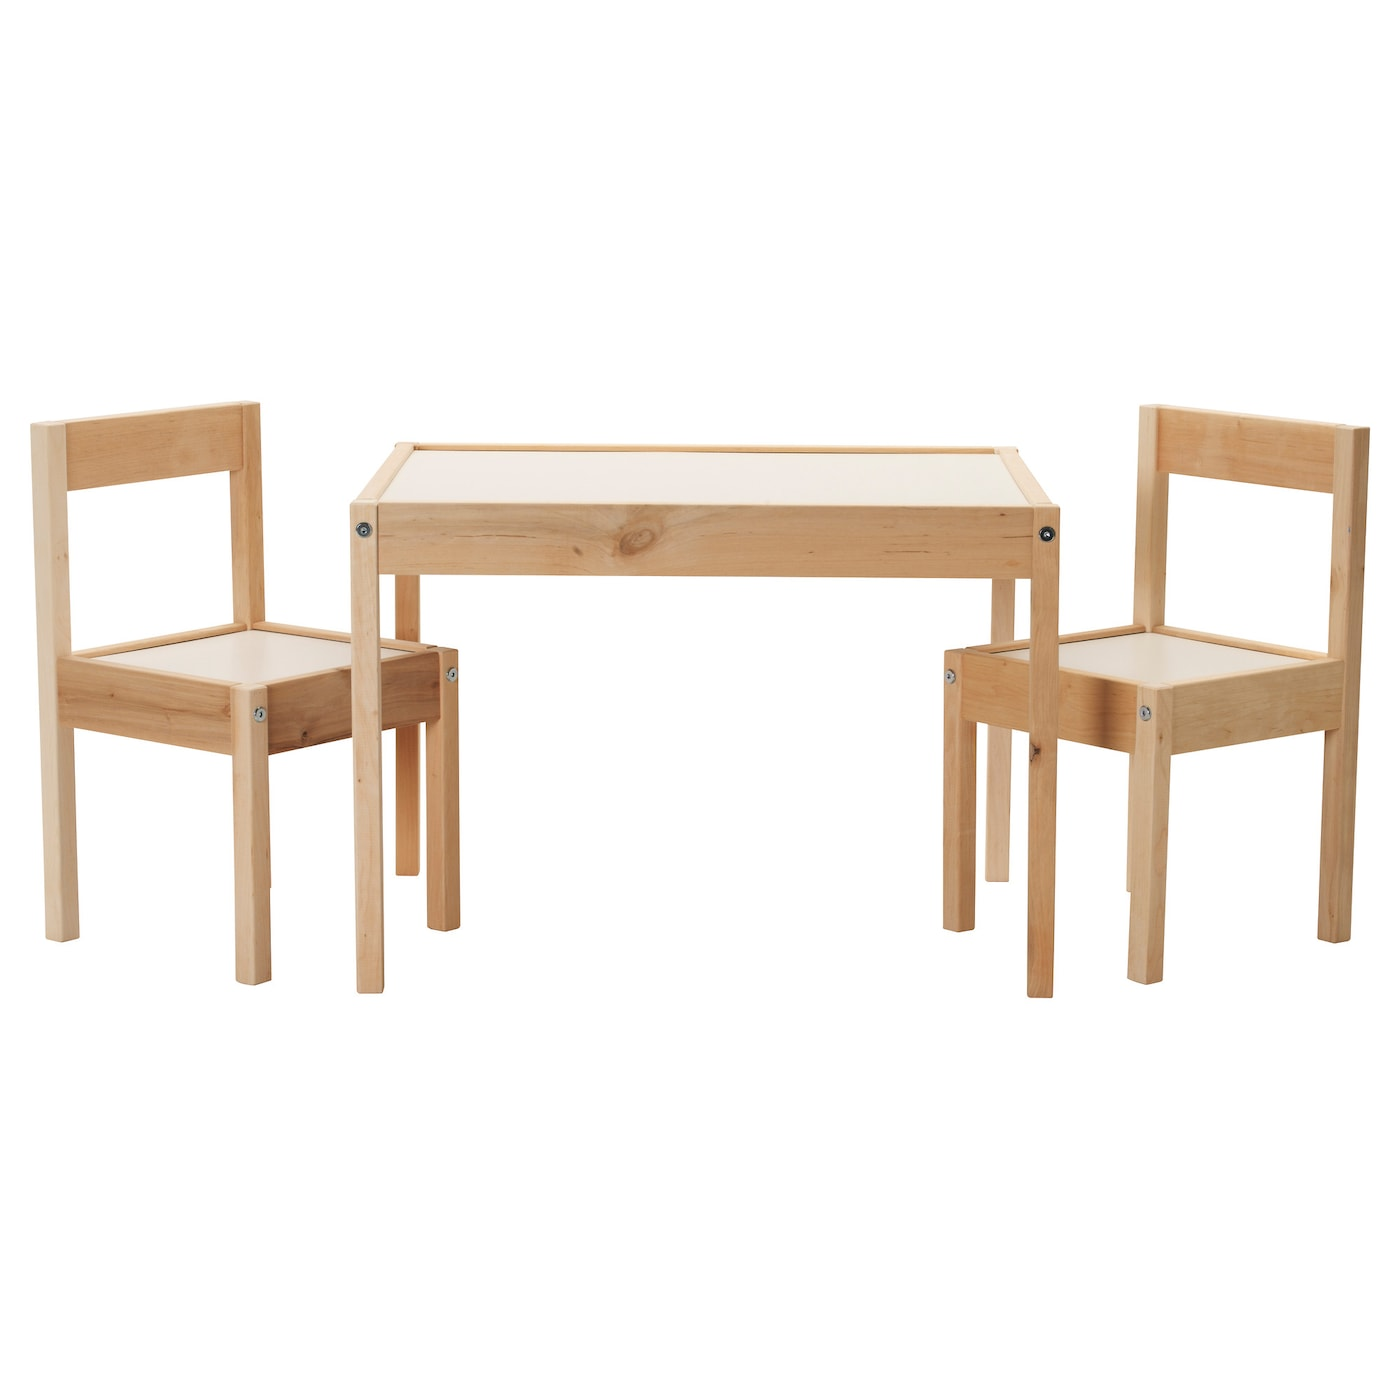 lÄtt children's table with  chairs whitepine  ikea - ikea lÄtt children's table with  chairs